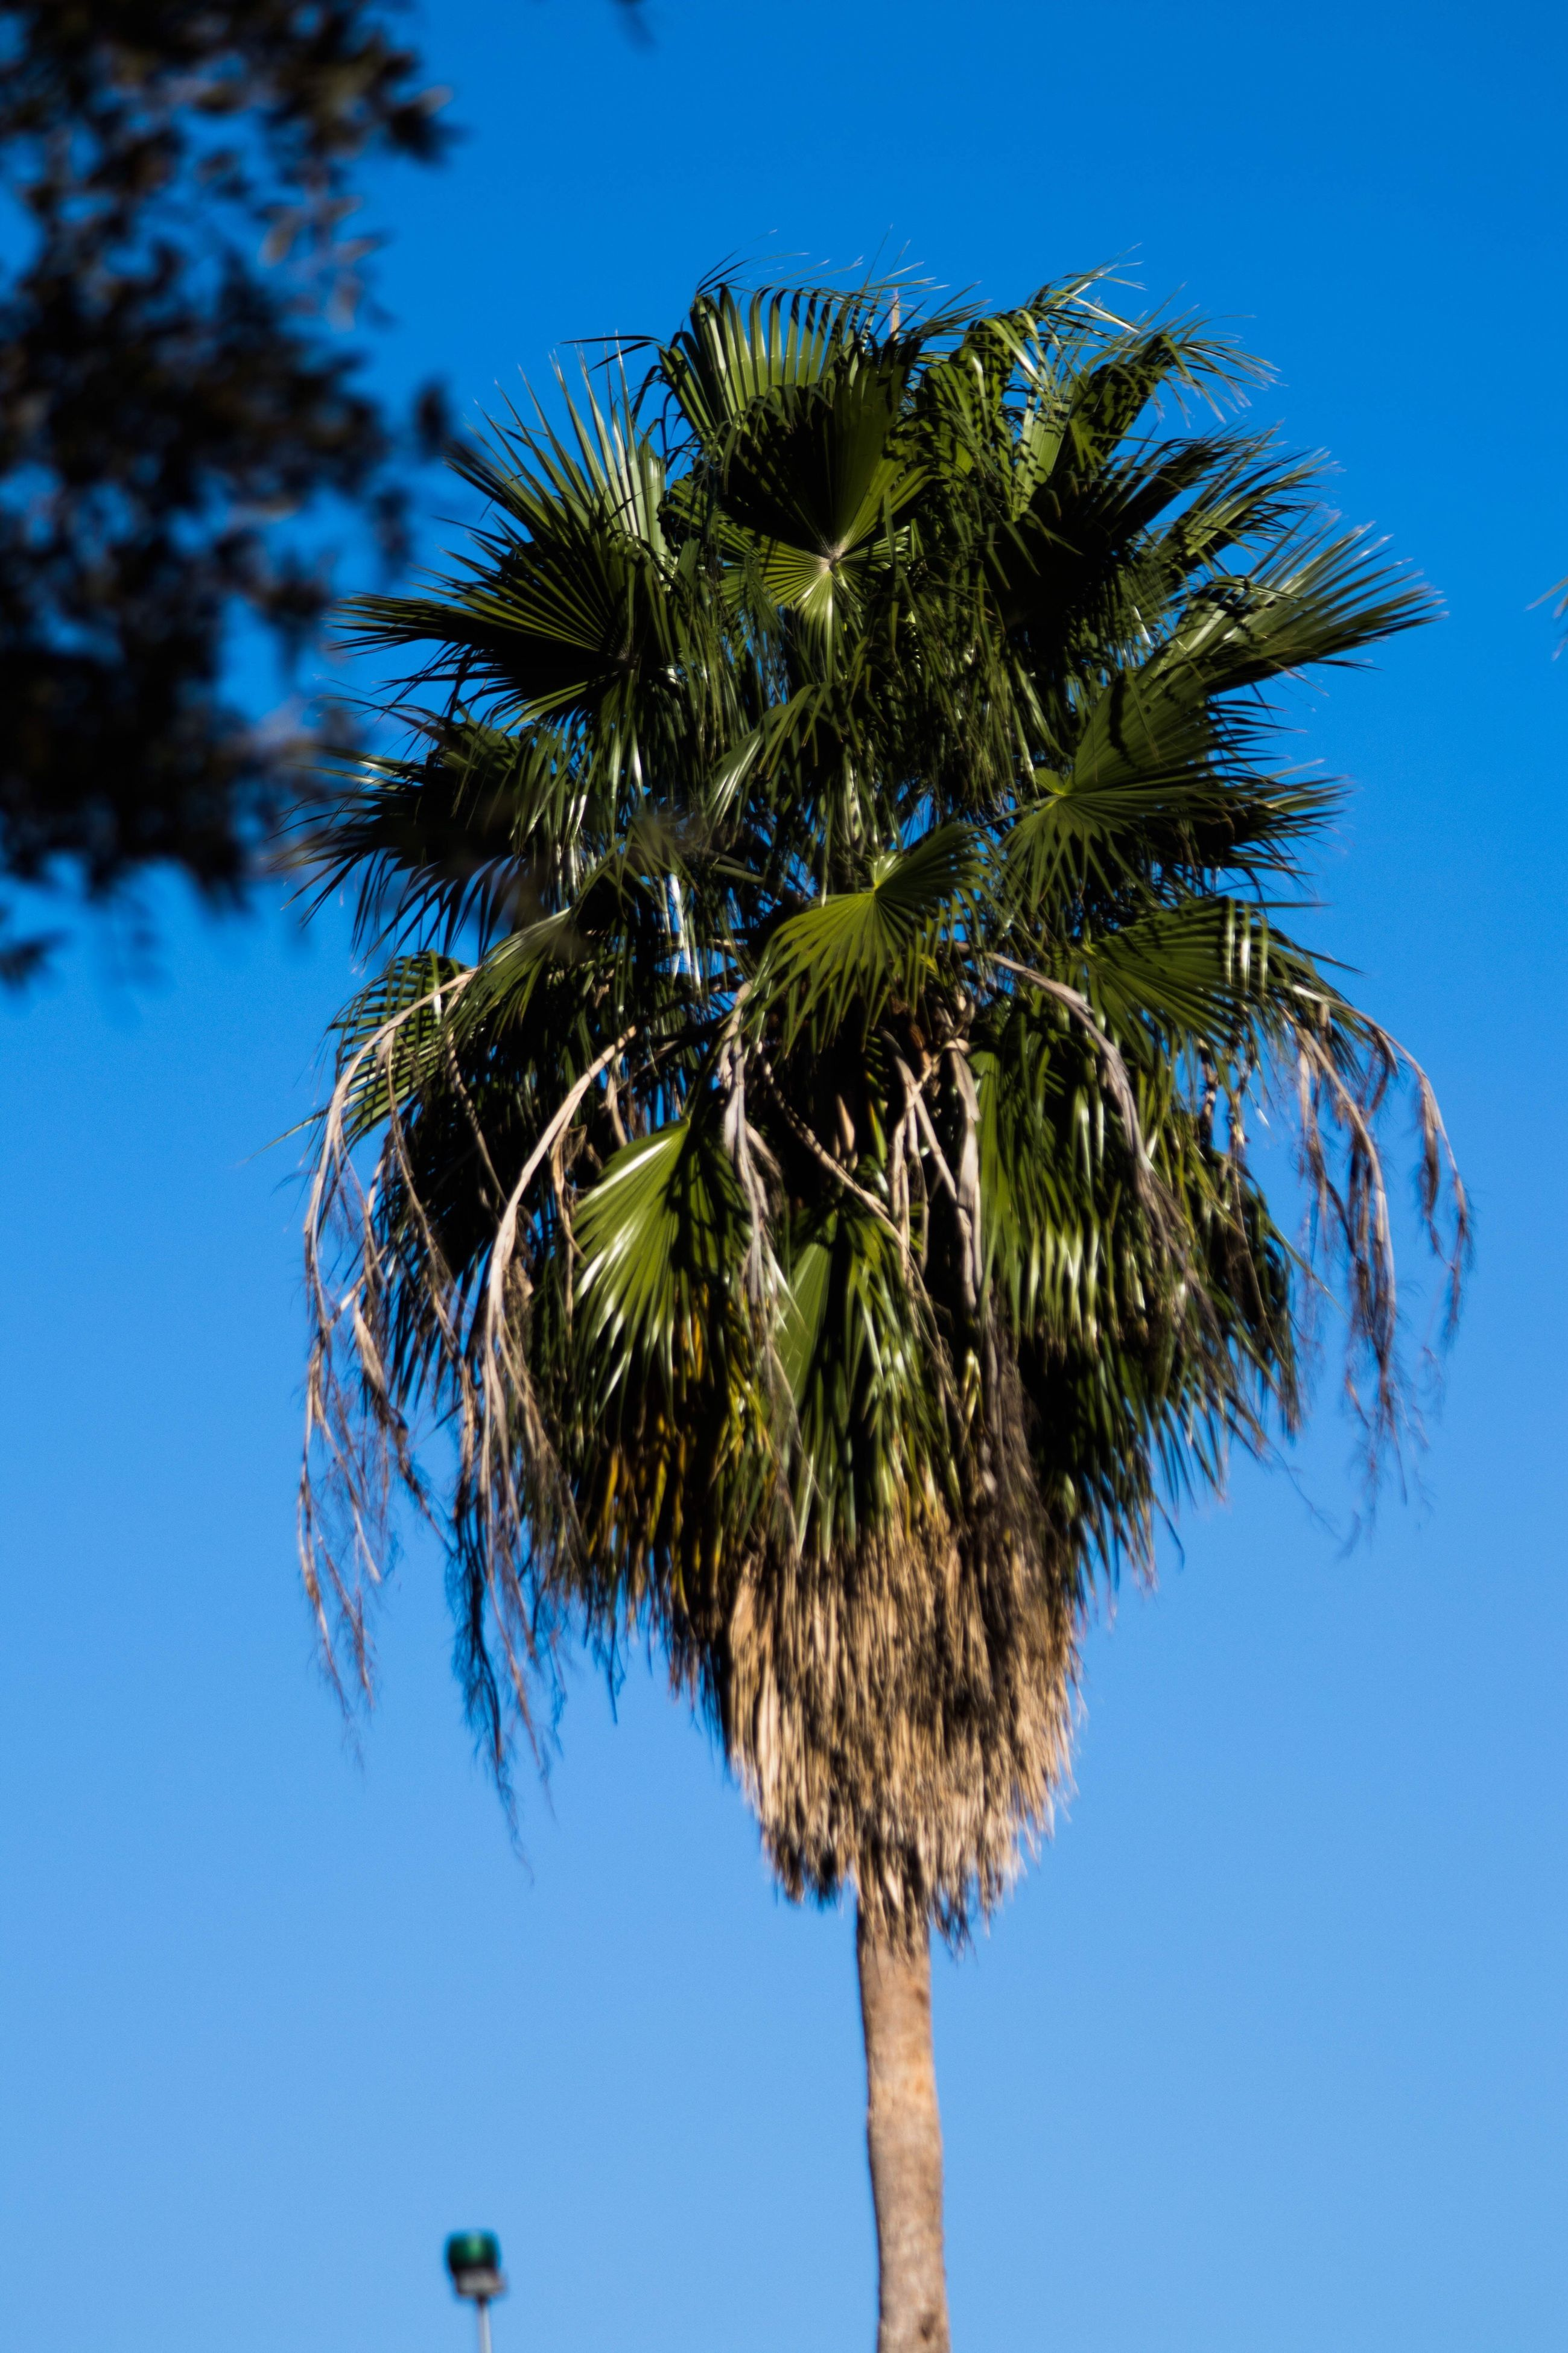 blue, tree, pine tree, growth, palm tree, nature, no people, sky, day, outdoors, beauty in nature, close-up